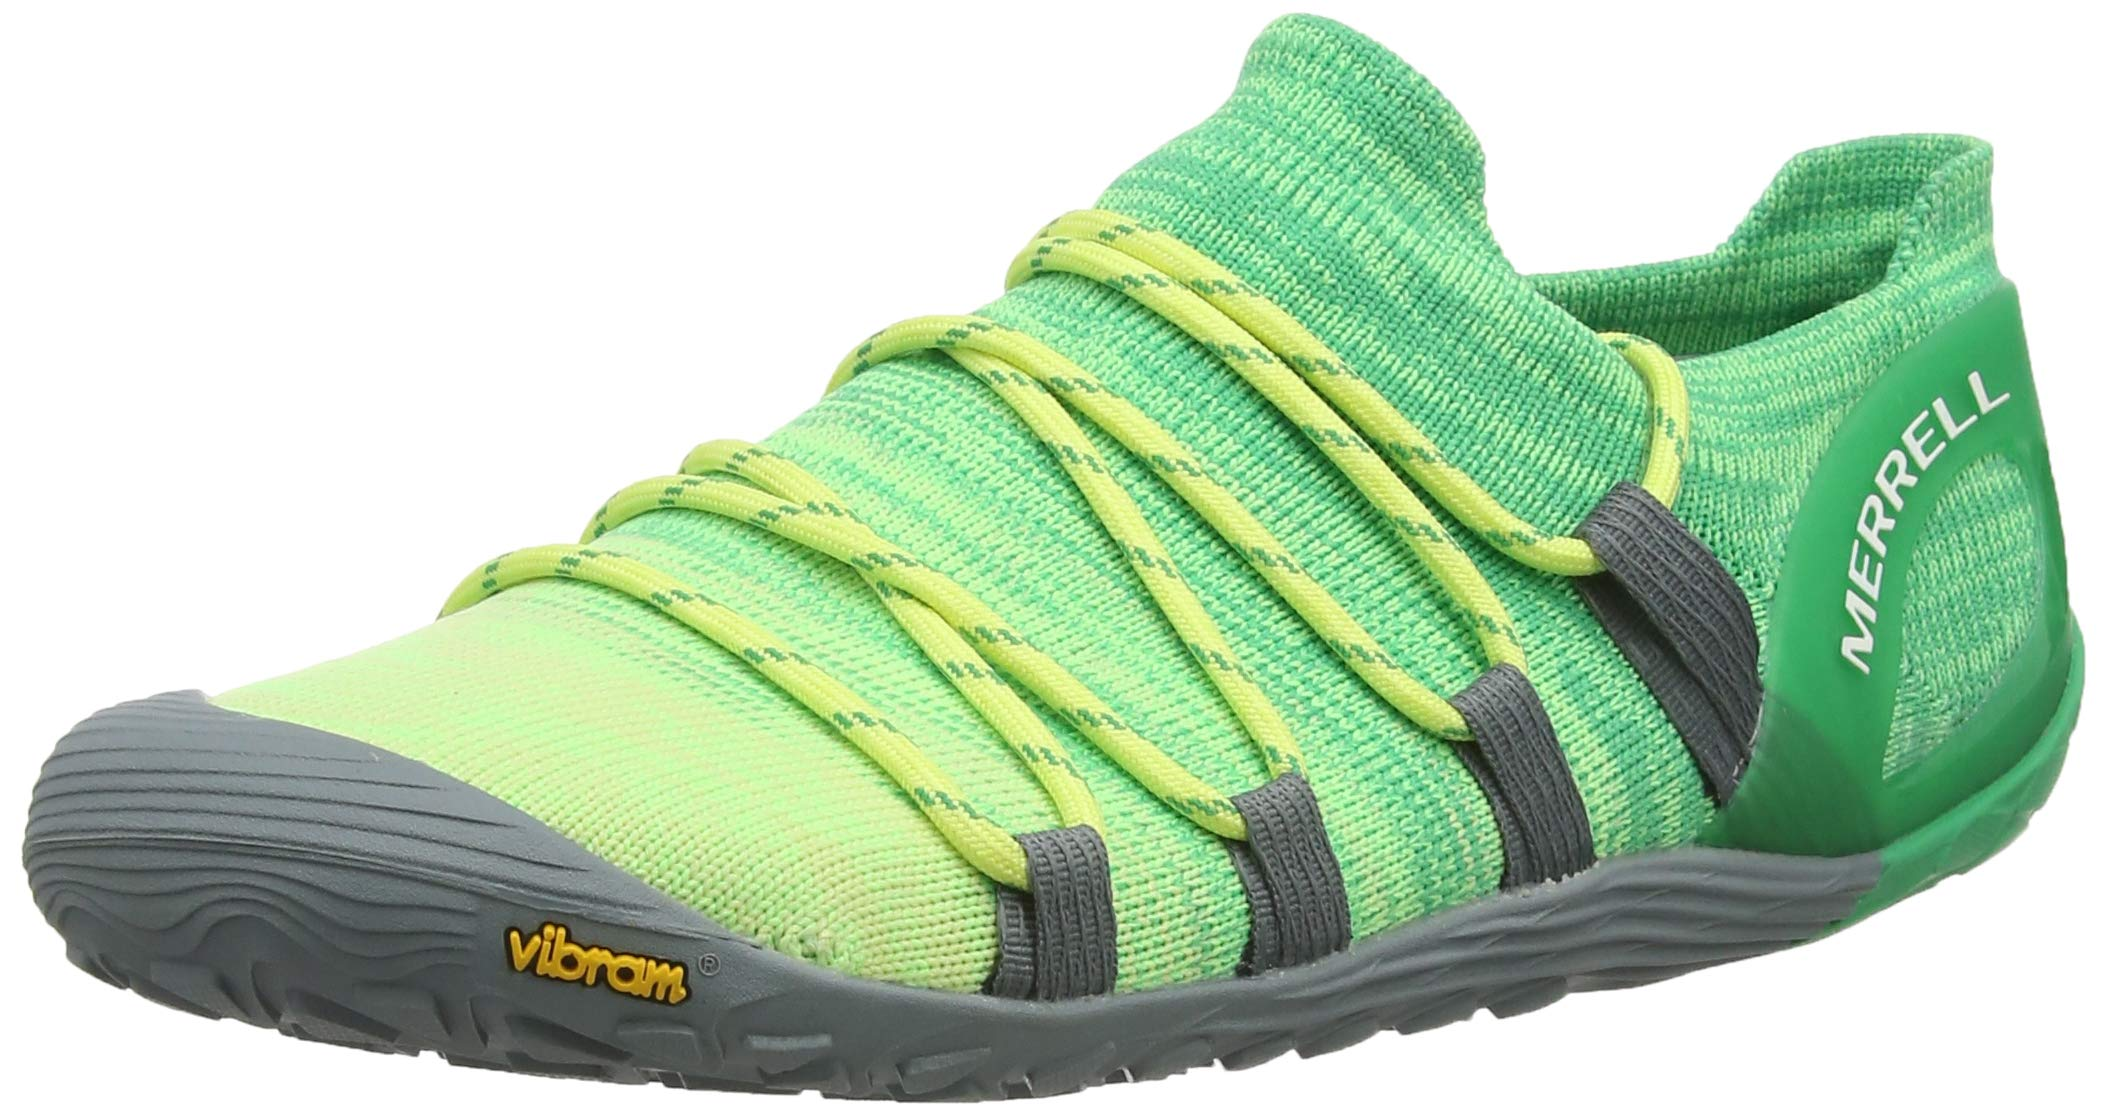 Merrell Women's Vapor Glove 4 3D Sunny Lime/Beetle 7.5 M US by Merrell